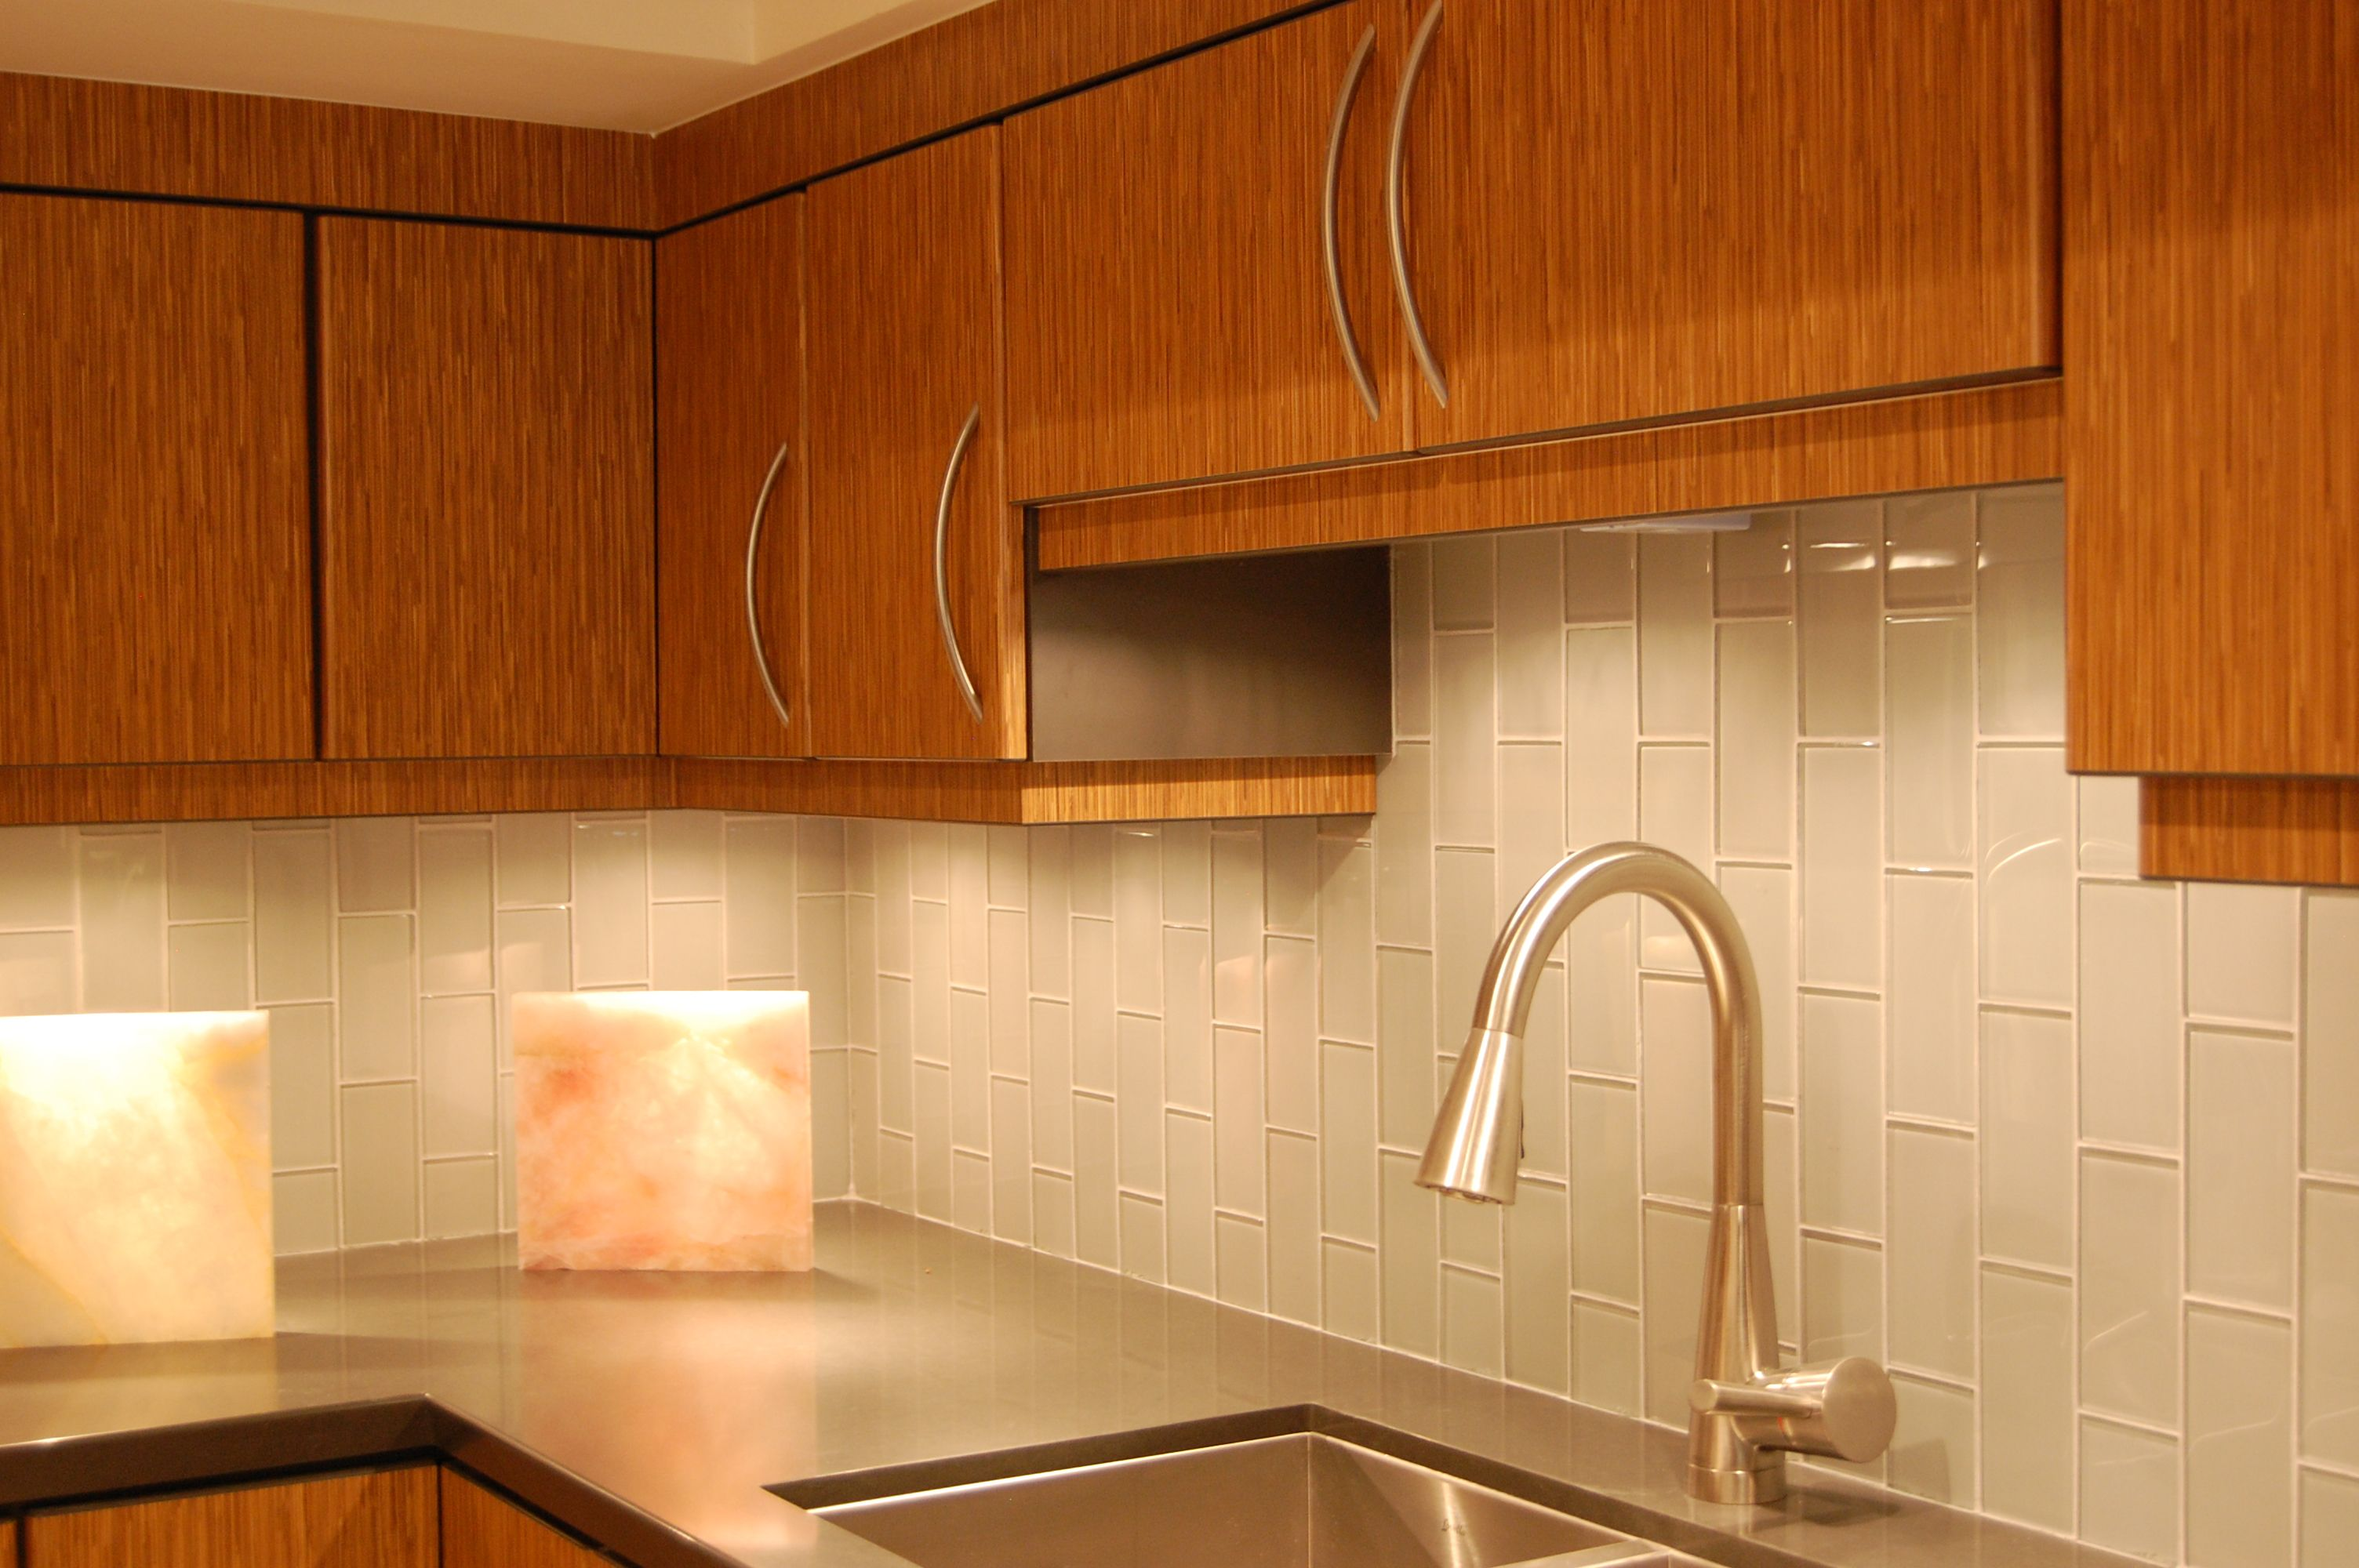 white glass subway tile subway tiles kitchen backsplash and